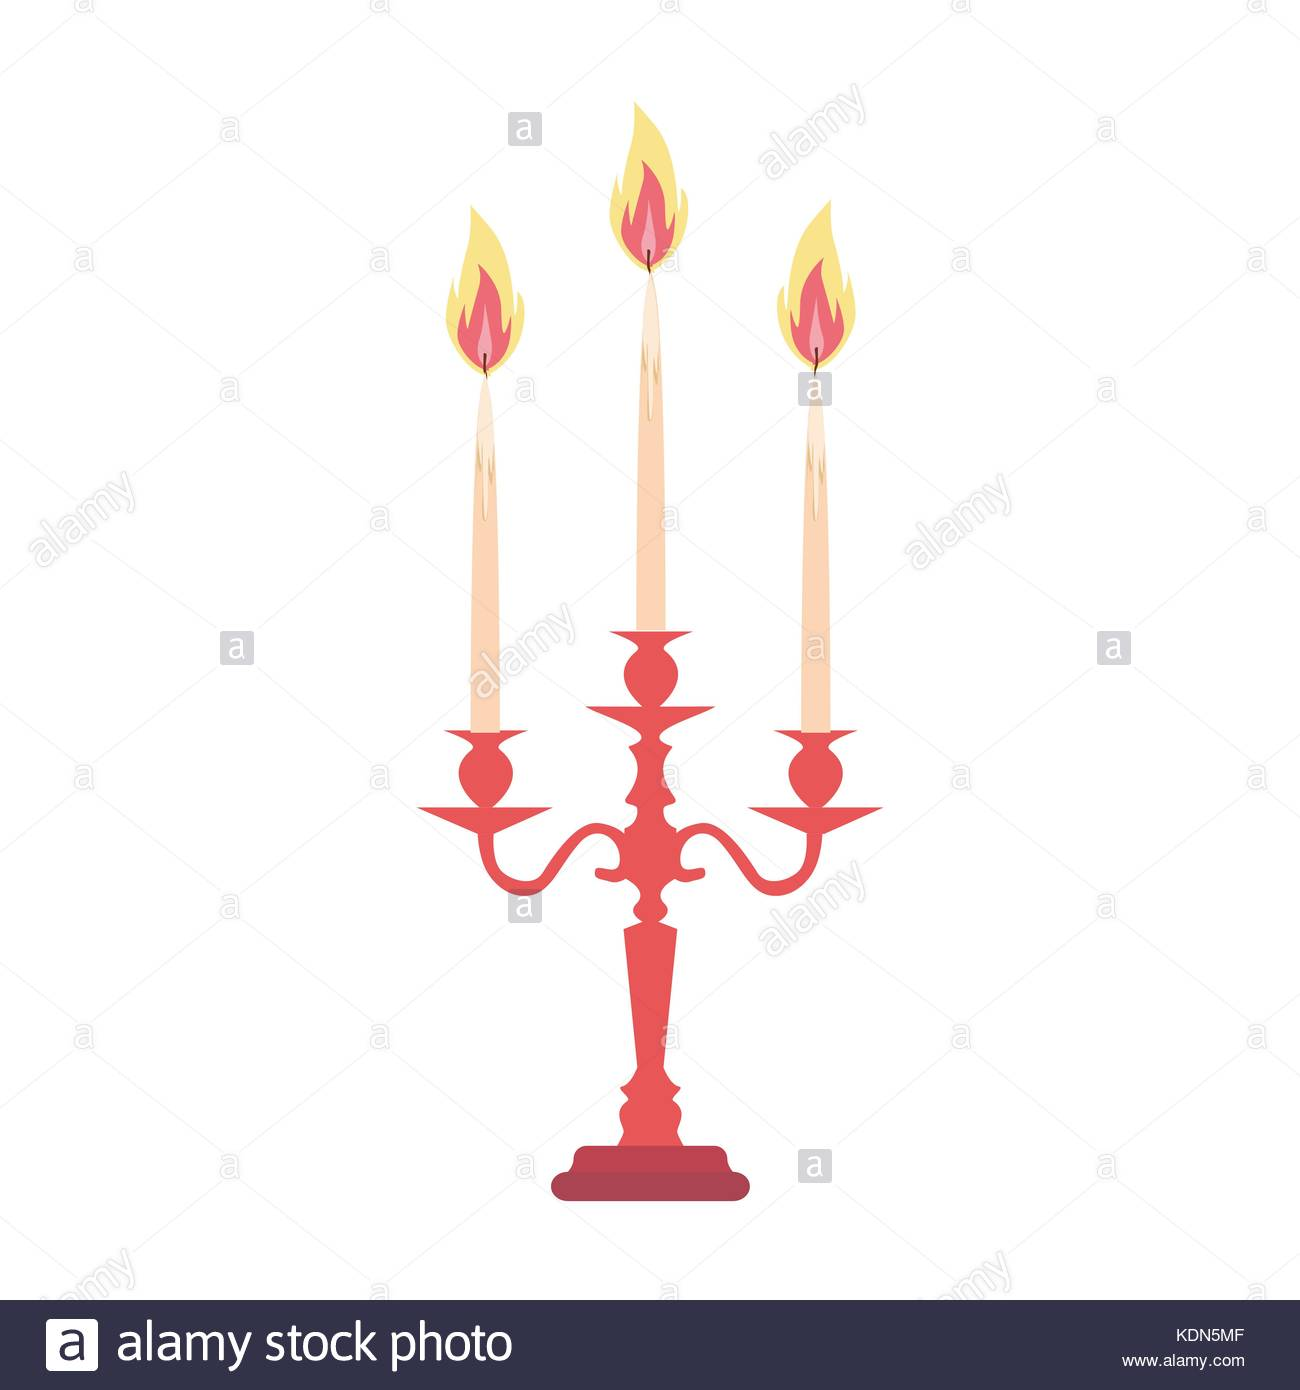 Candelabra Candlestick Chandelier Candle Vector Isolated Vintage Antique Holder Silhouette Ilration